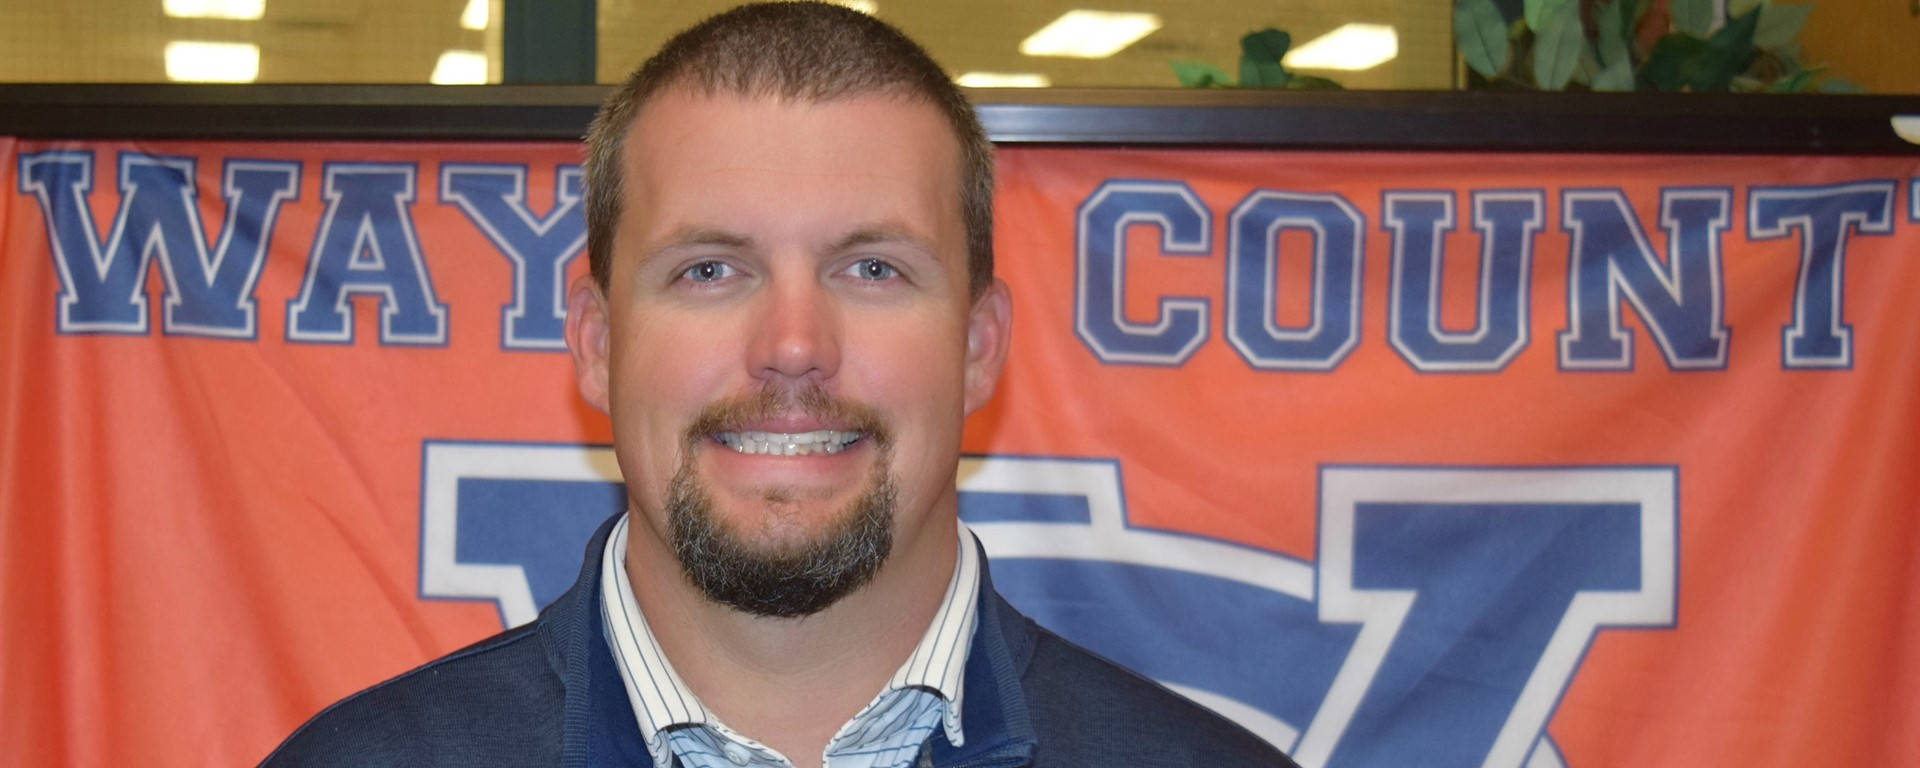 Ian Sharp named Wayne County High School Teacher of the Year